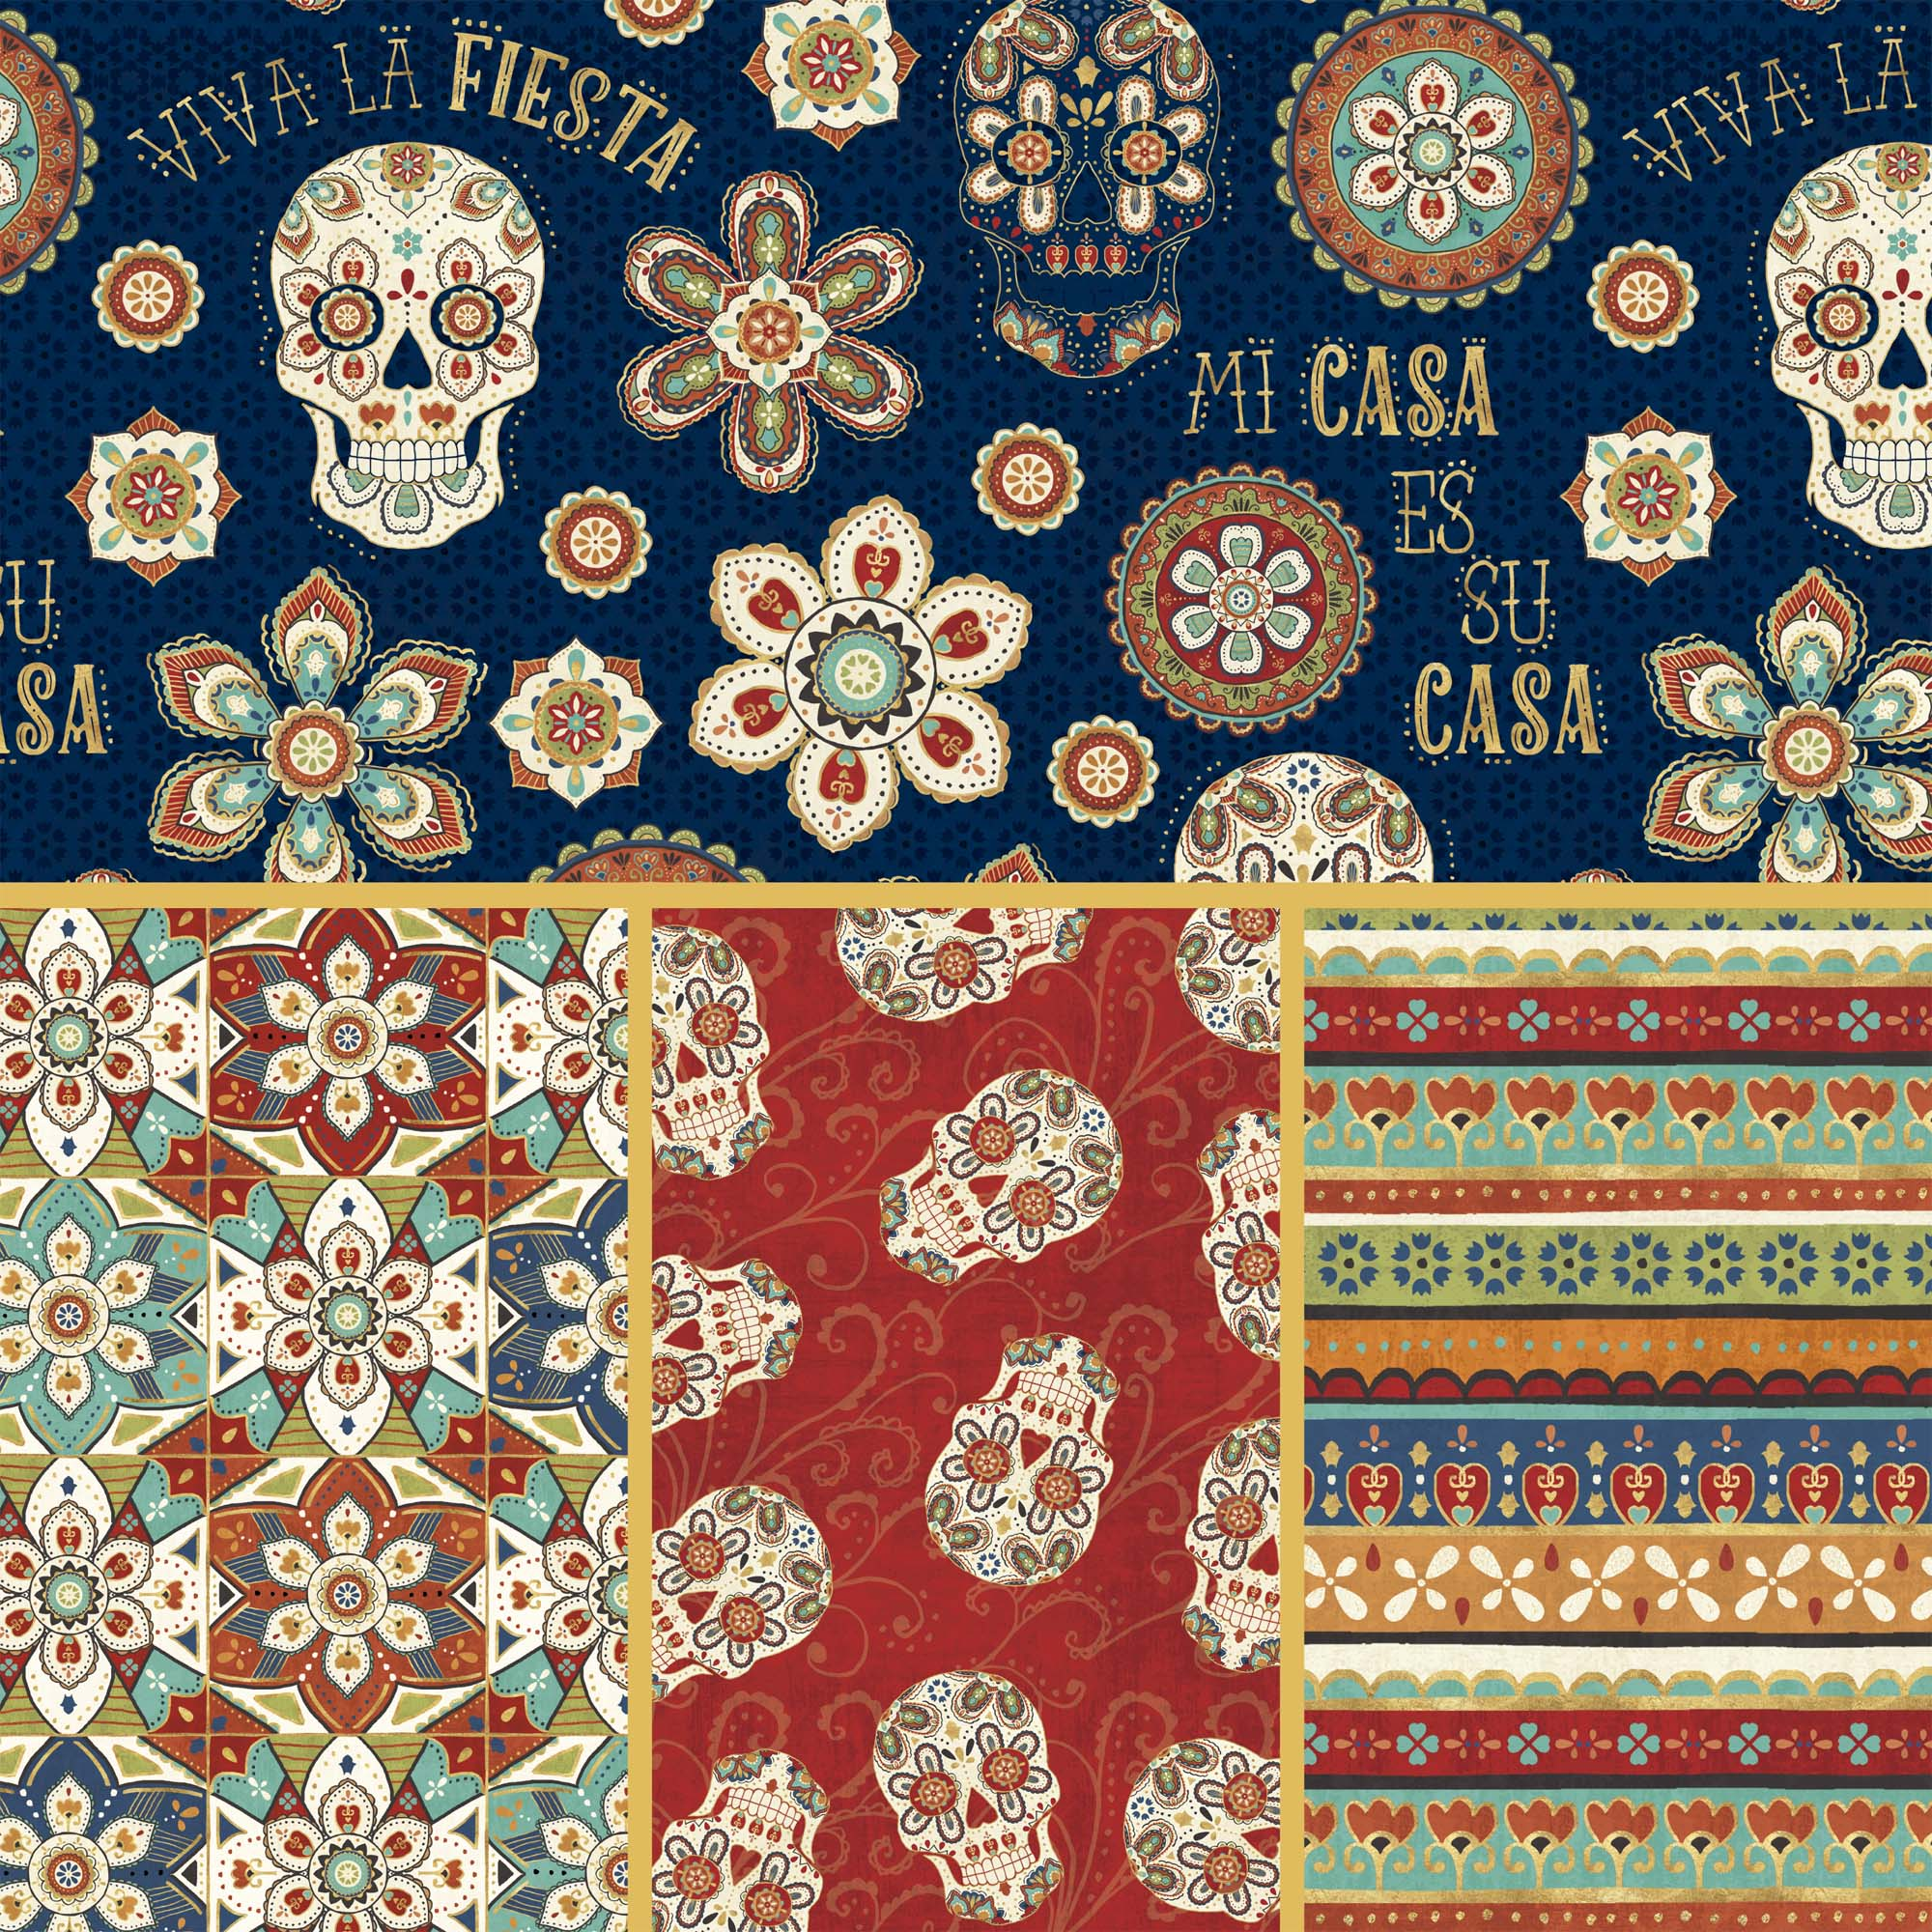 David Textiles Cotton Precut Fabric La Vida Loca Collection 1 Yd X 44 Inches